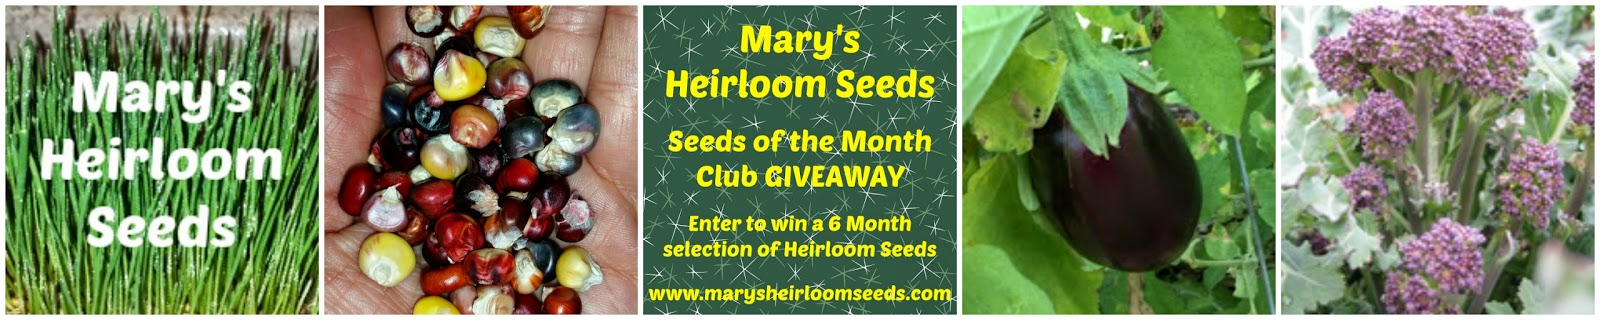 Organic, Heirloom, Non-GMO Seed Giveaway From Mary's Heirloom Seeds